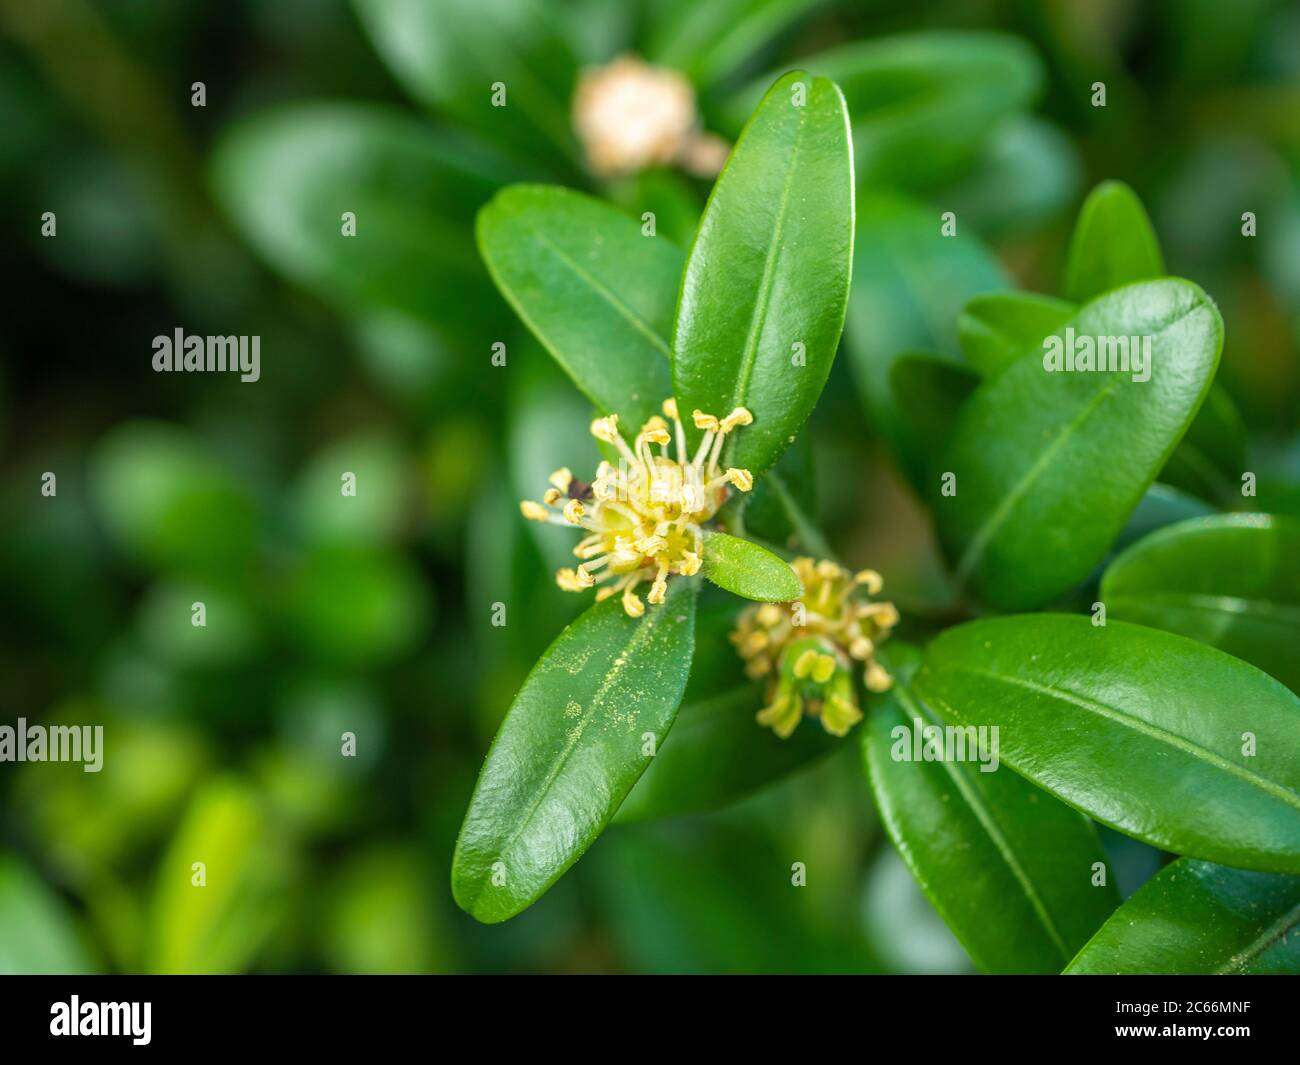 Common boxwood (Buxus sempervirens) in flower, spring, close-up, Bavaria, Germany, Europe Stock Photo